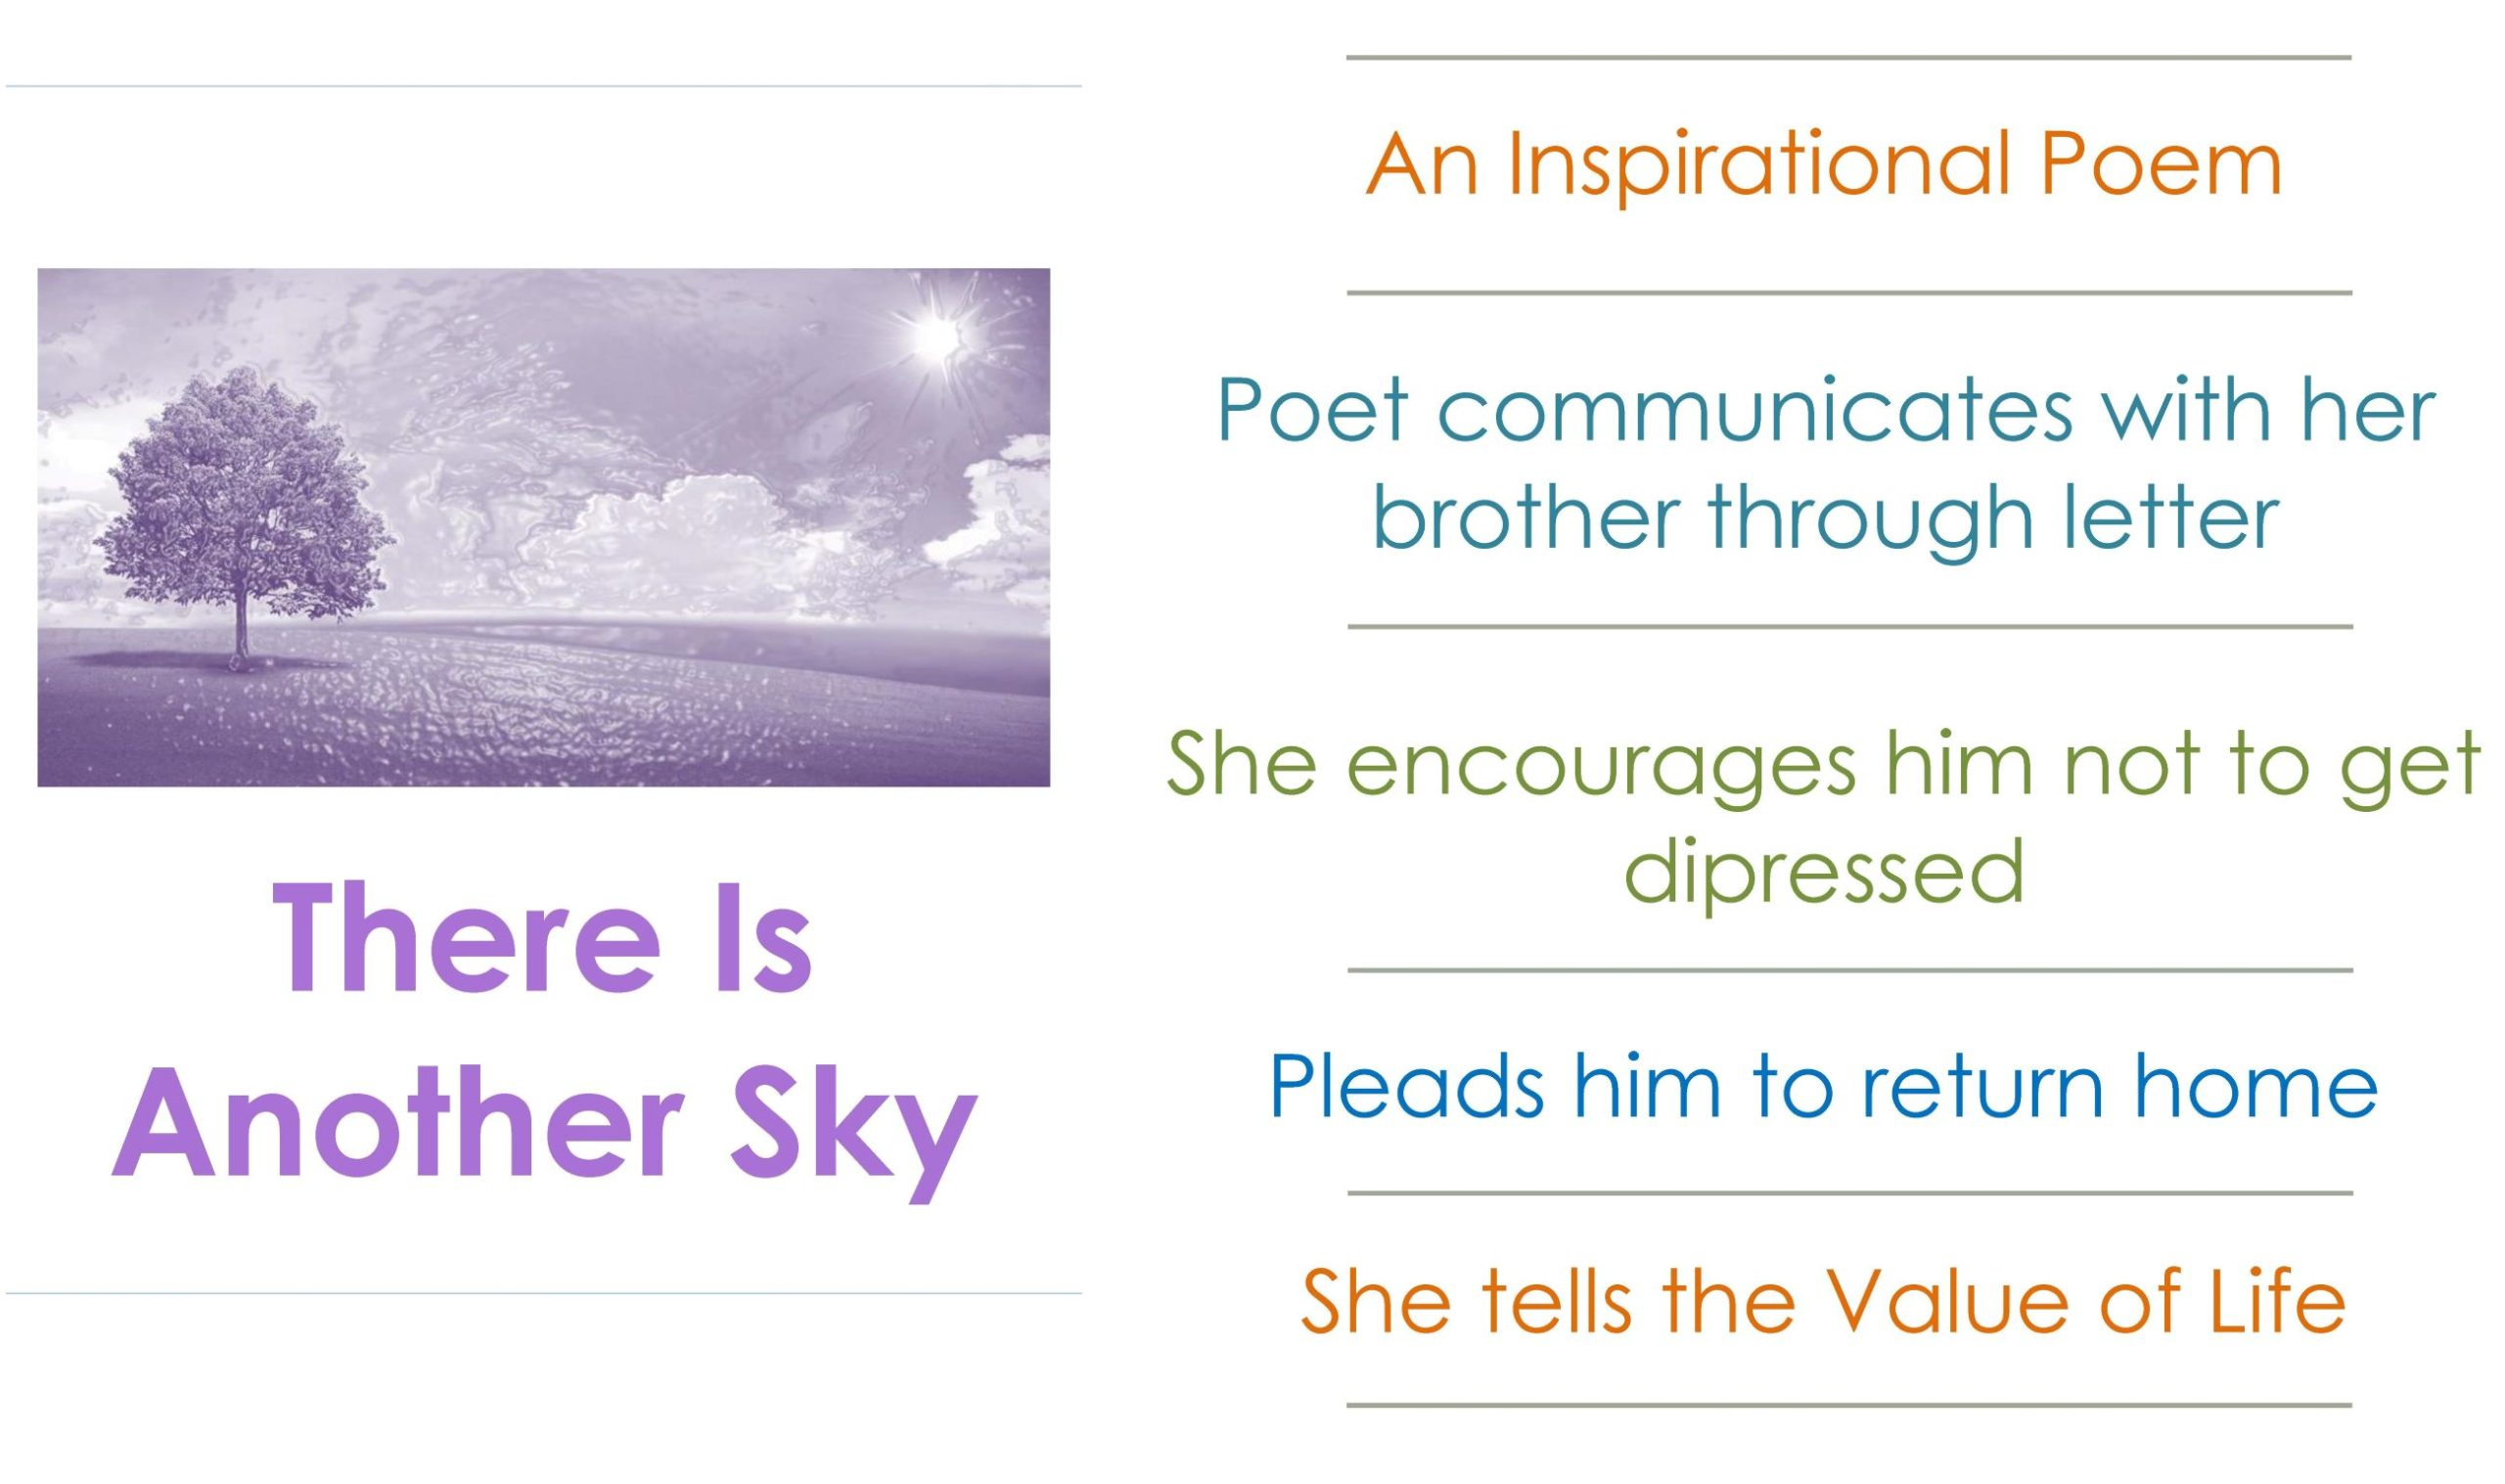 POEM_THERE_IS_ANOTHER_SKY_3_